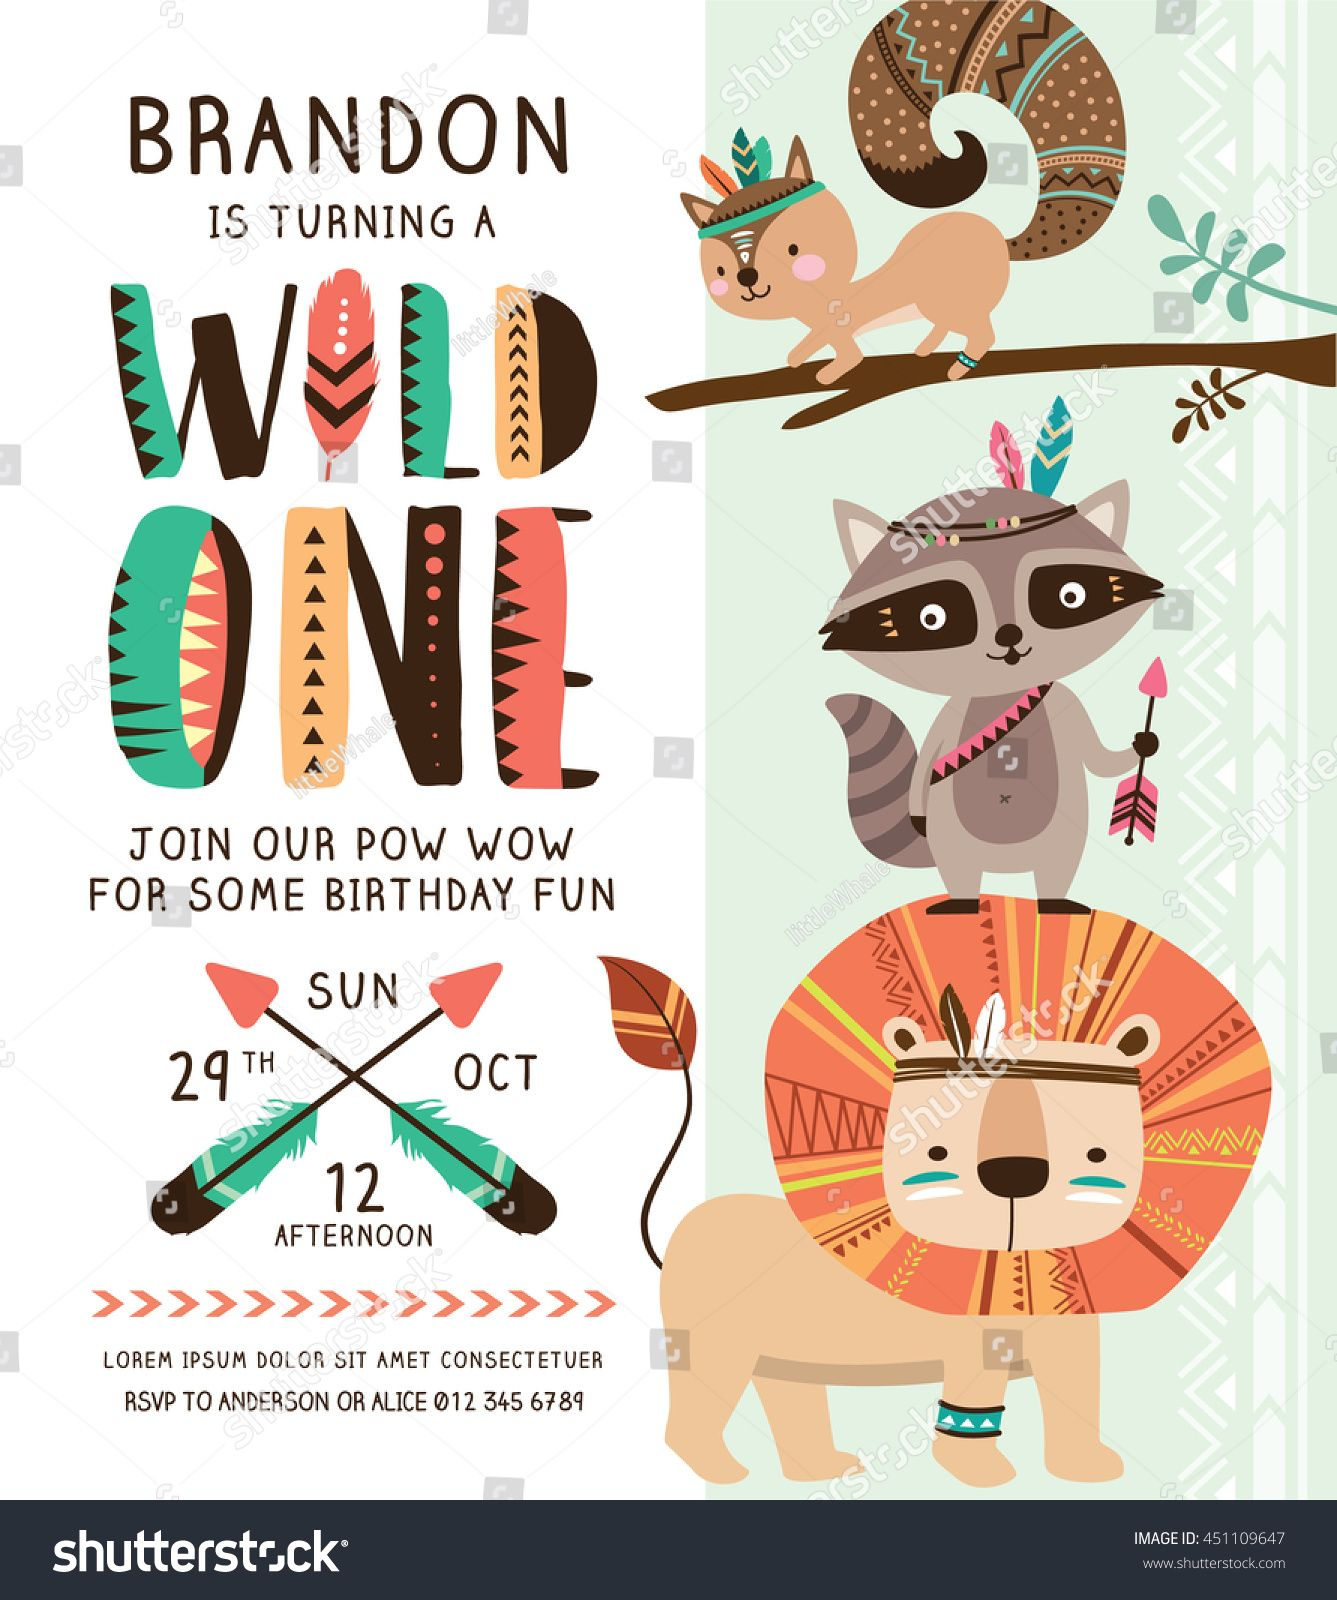 Custom Tribal Woodland 1st Birthday Boho Rustic Pow Wow Decorations Tribal Animal Backgrounds Computer Print Party Backdrop Sale Price Camera & Photo